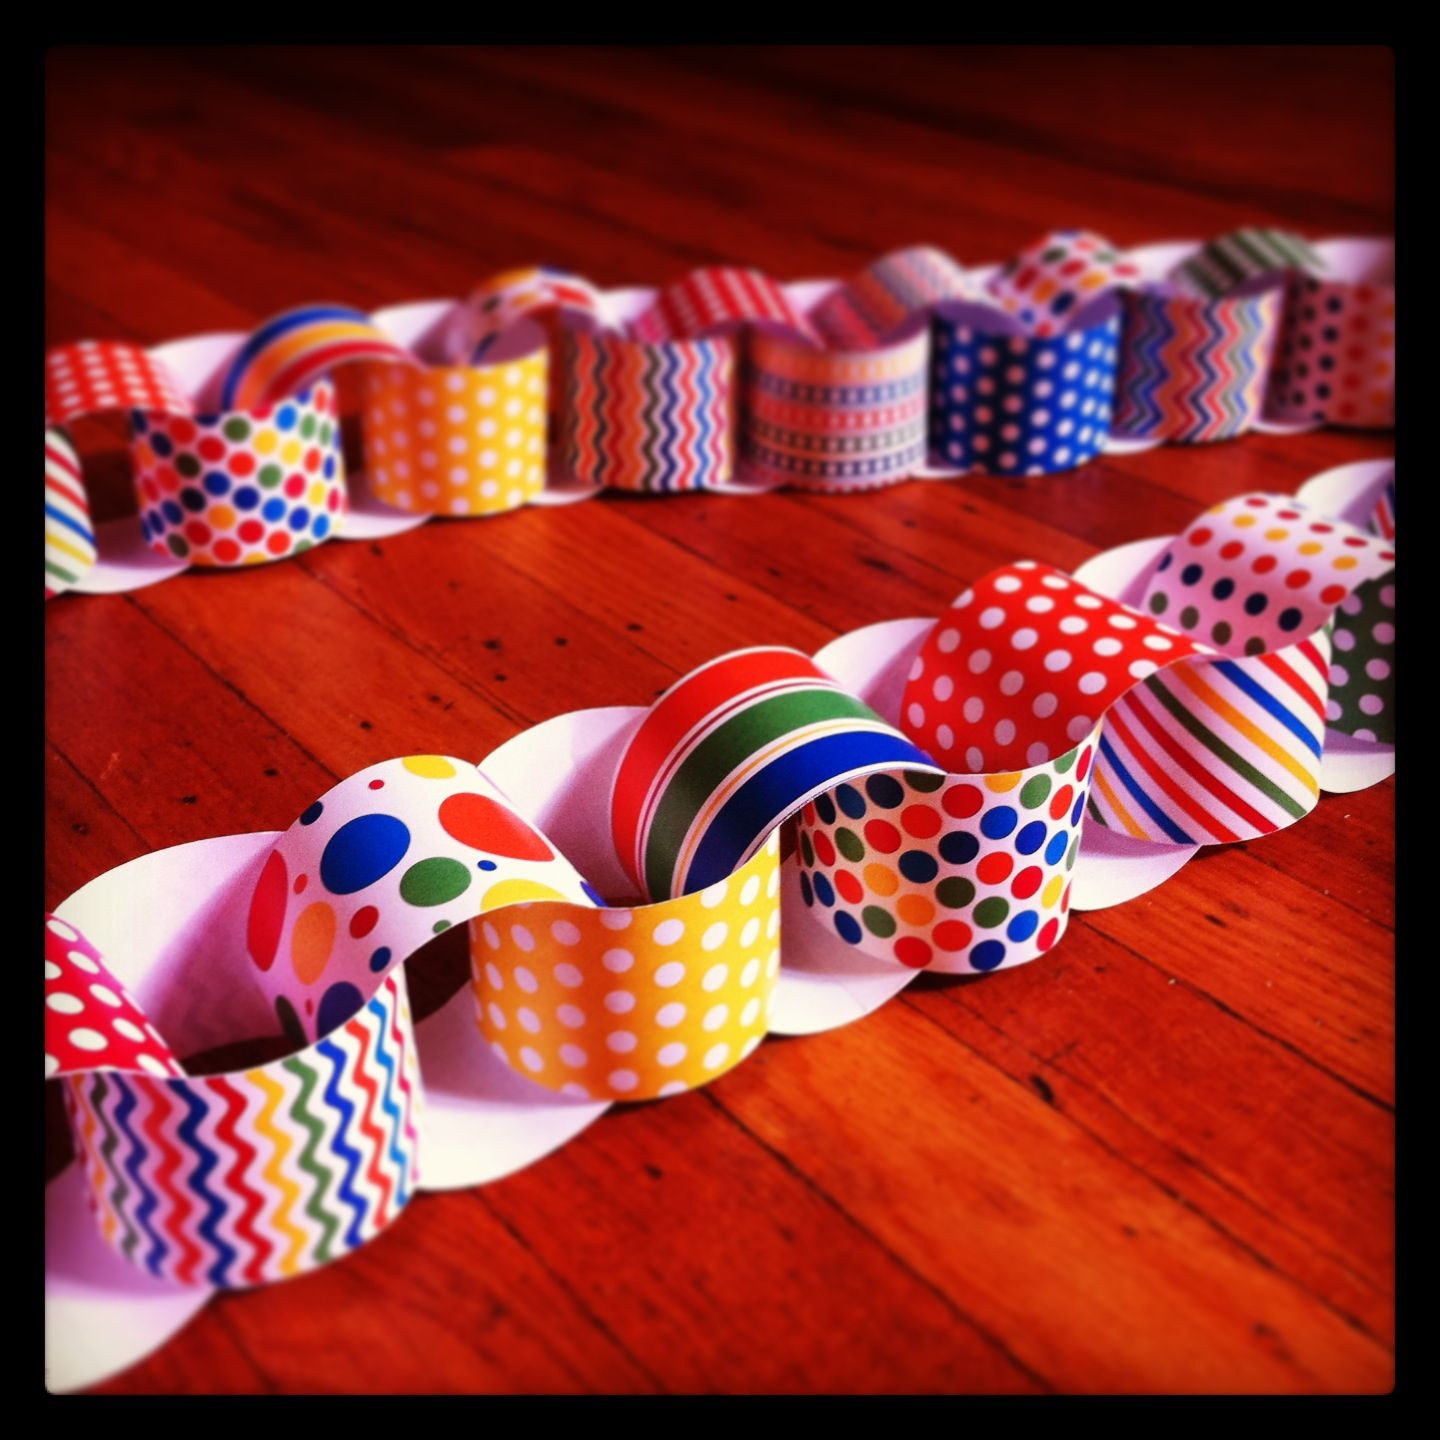 Paper chain for the twins' circus clown themed party